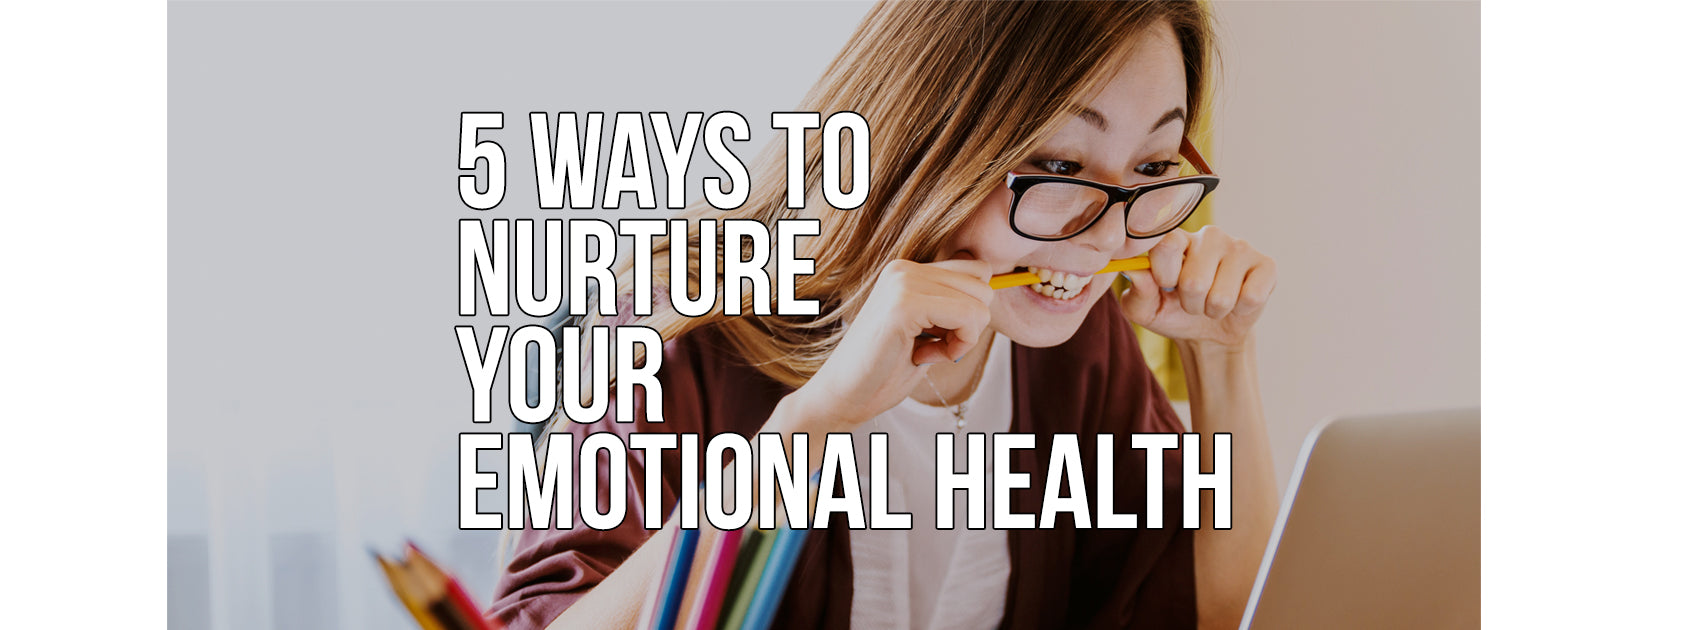 5 Ways to Nurture Your Emotional Health